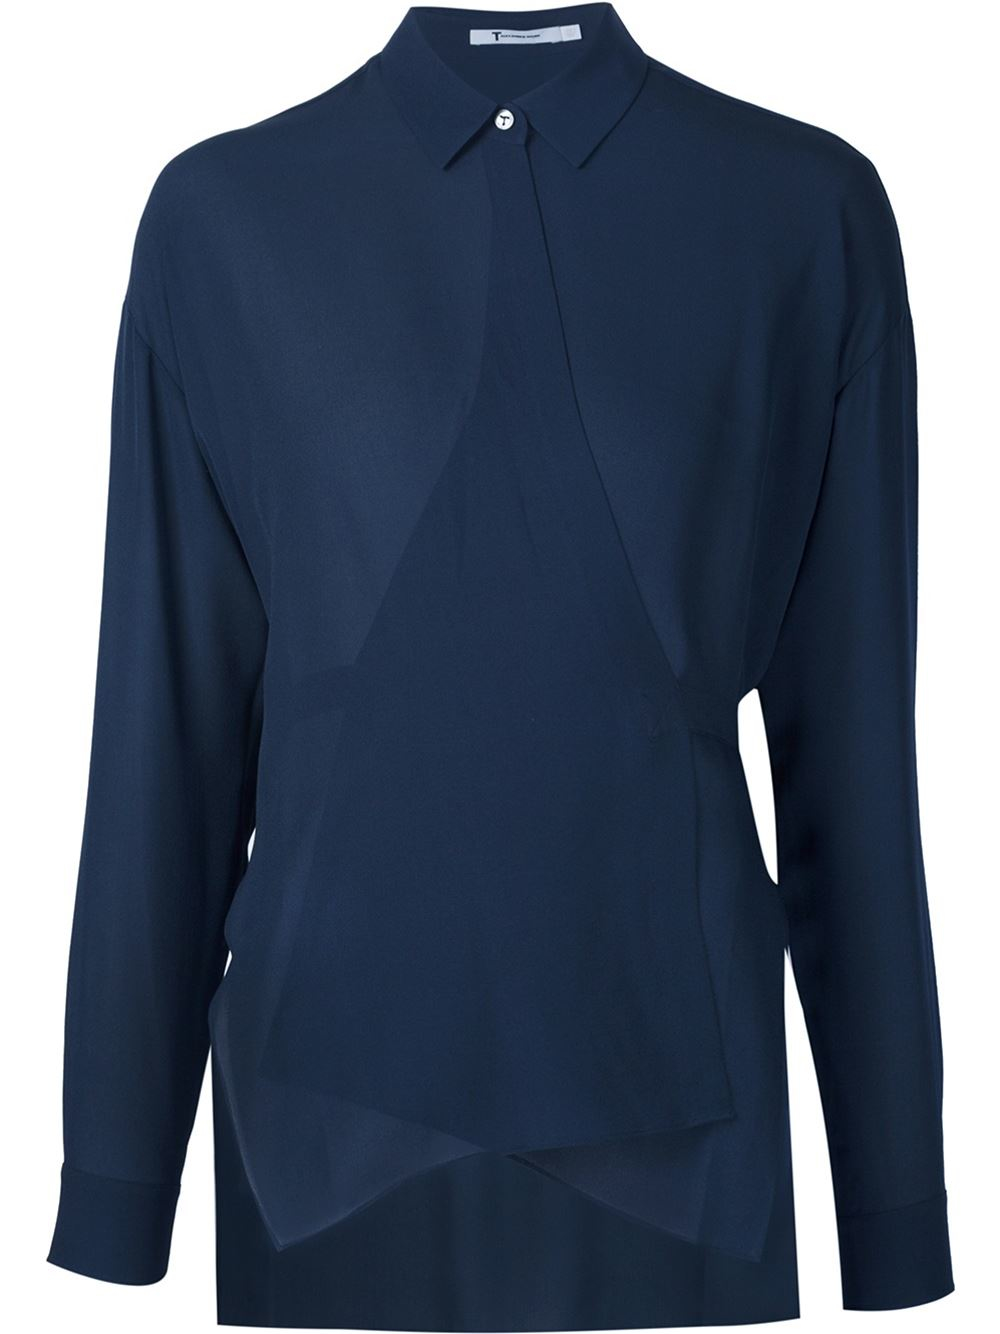 t by alexander wang wrap style shirt in blue lyst ForWrap Style T Shirts